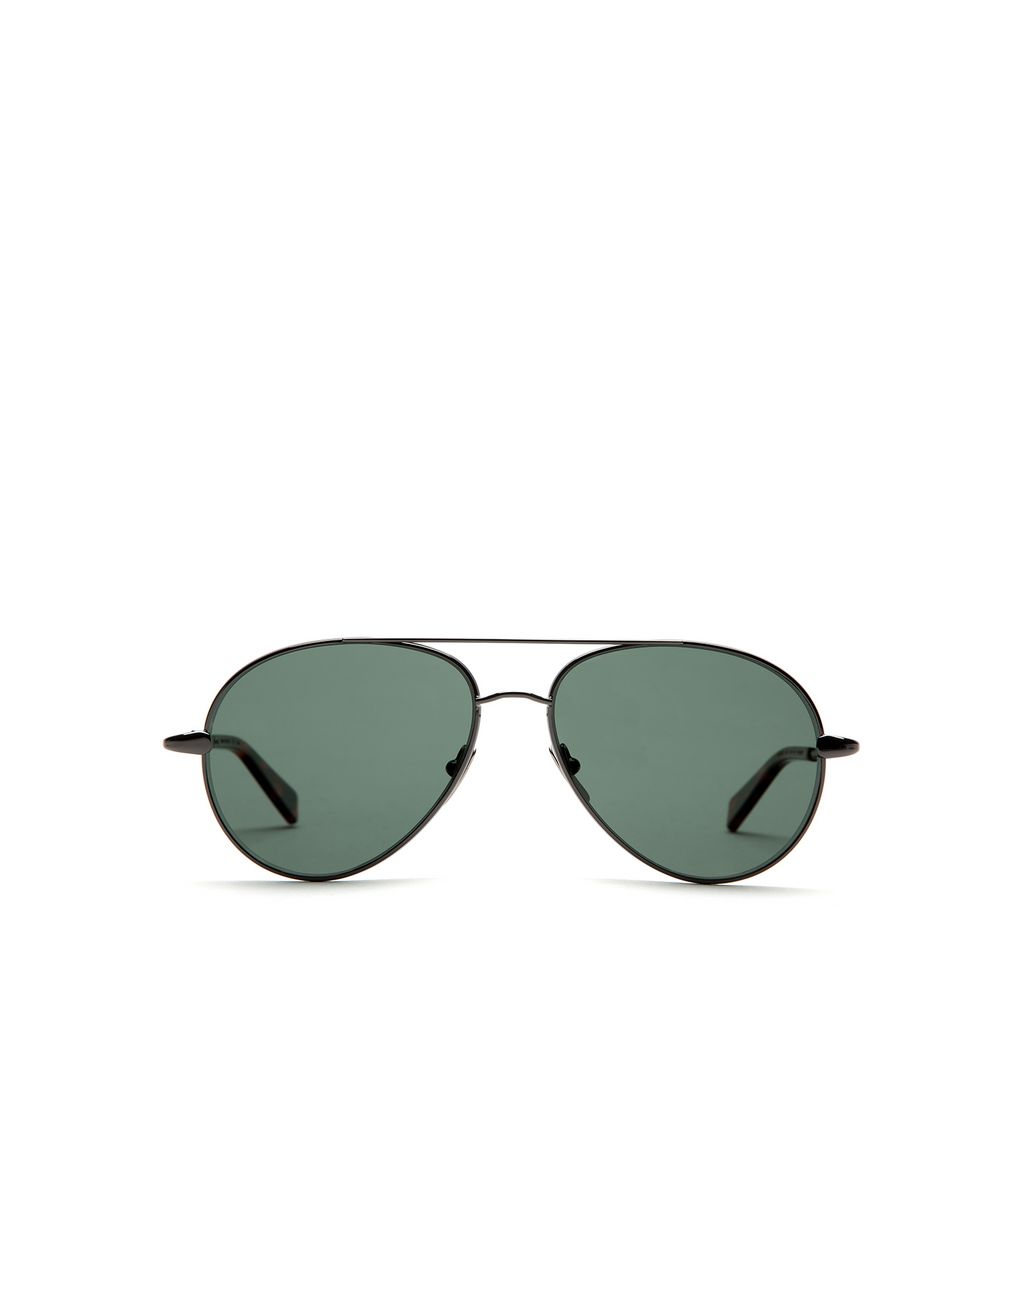 BRIONI Ruthenium Aviator Sunglasses with Green Lenses Sunglasses Man f